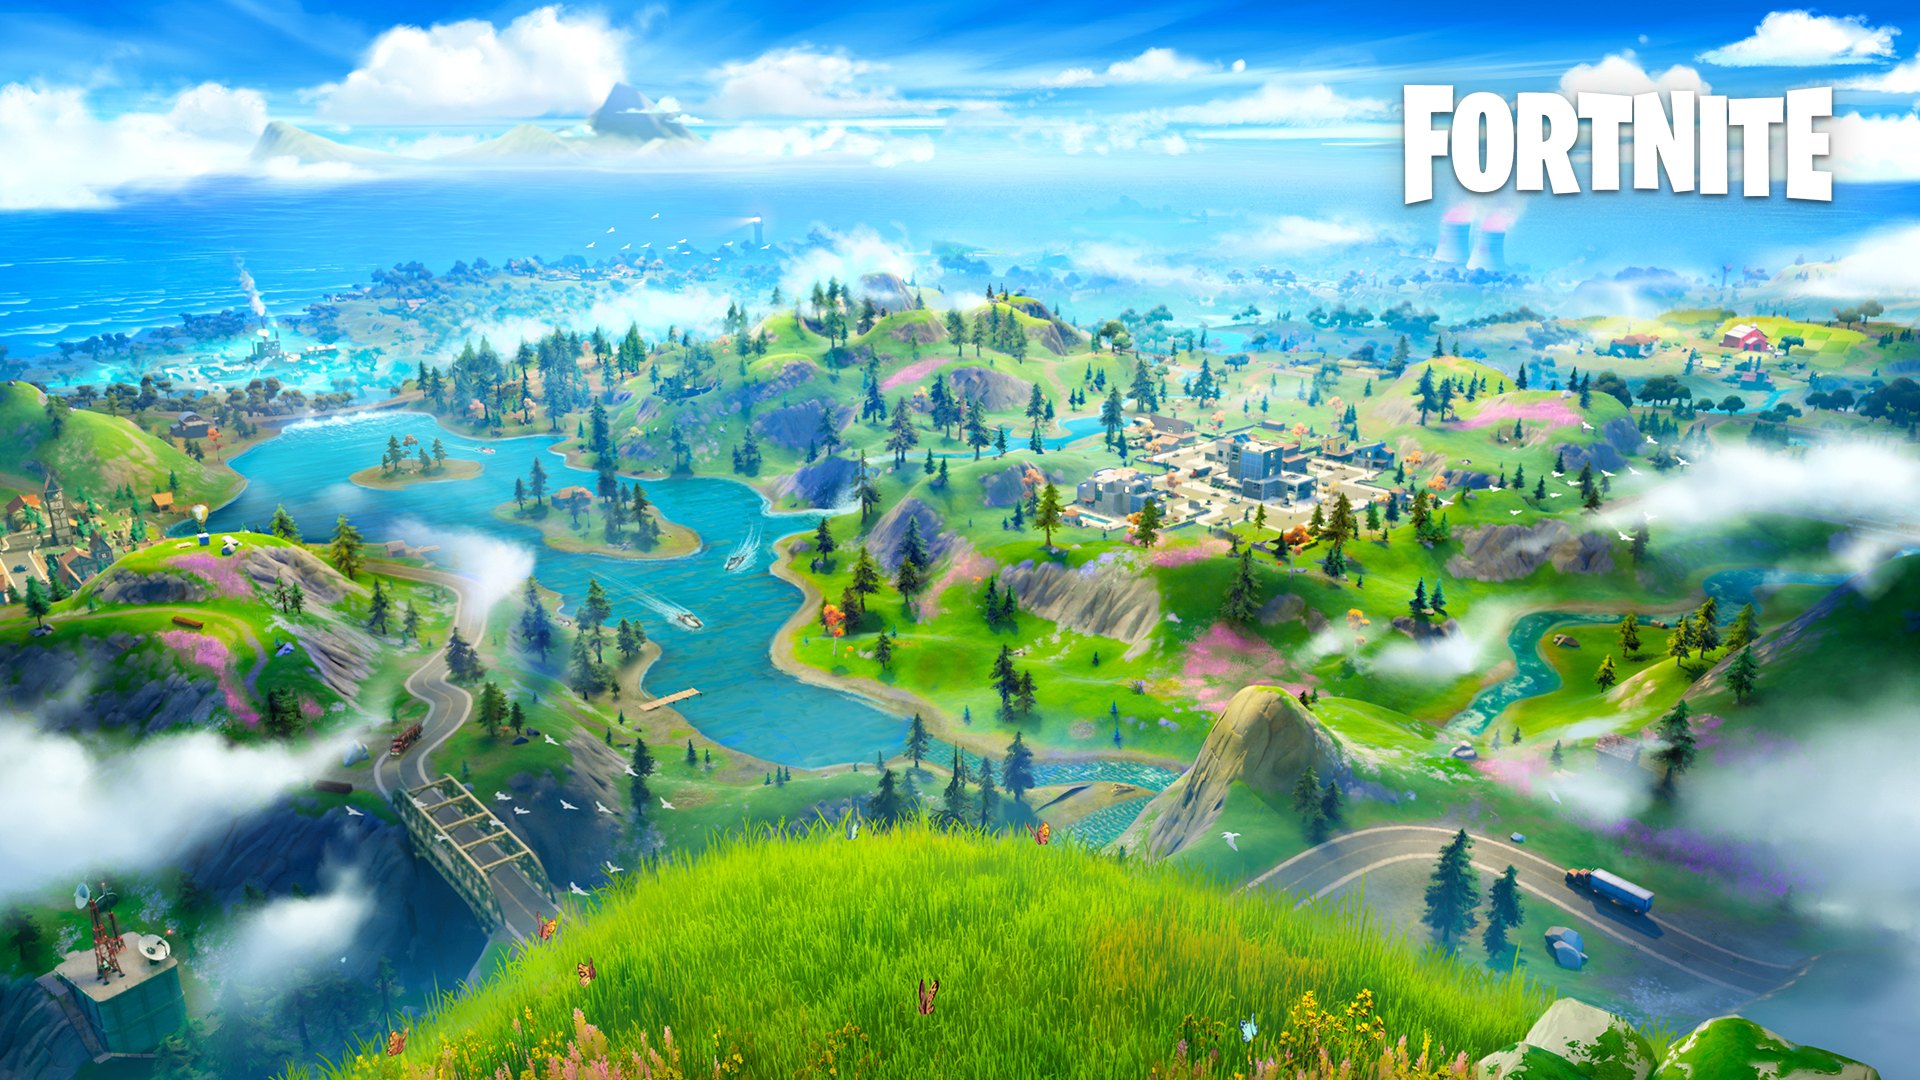 Fortnite chapter 2 landscape. Virtual background to use on Zoom, Microsoft Teams, Skype, Google Meet, WebEx or any other compatible app.